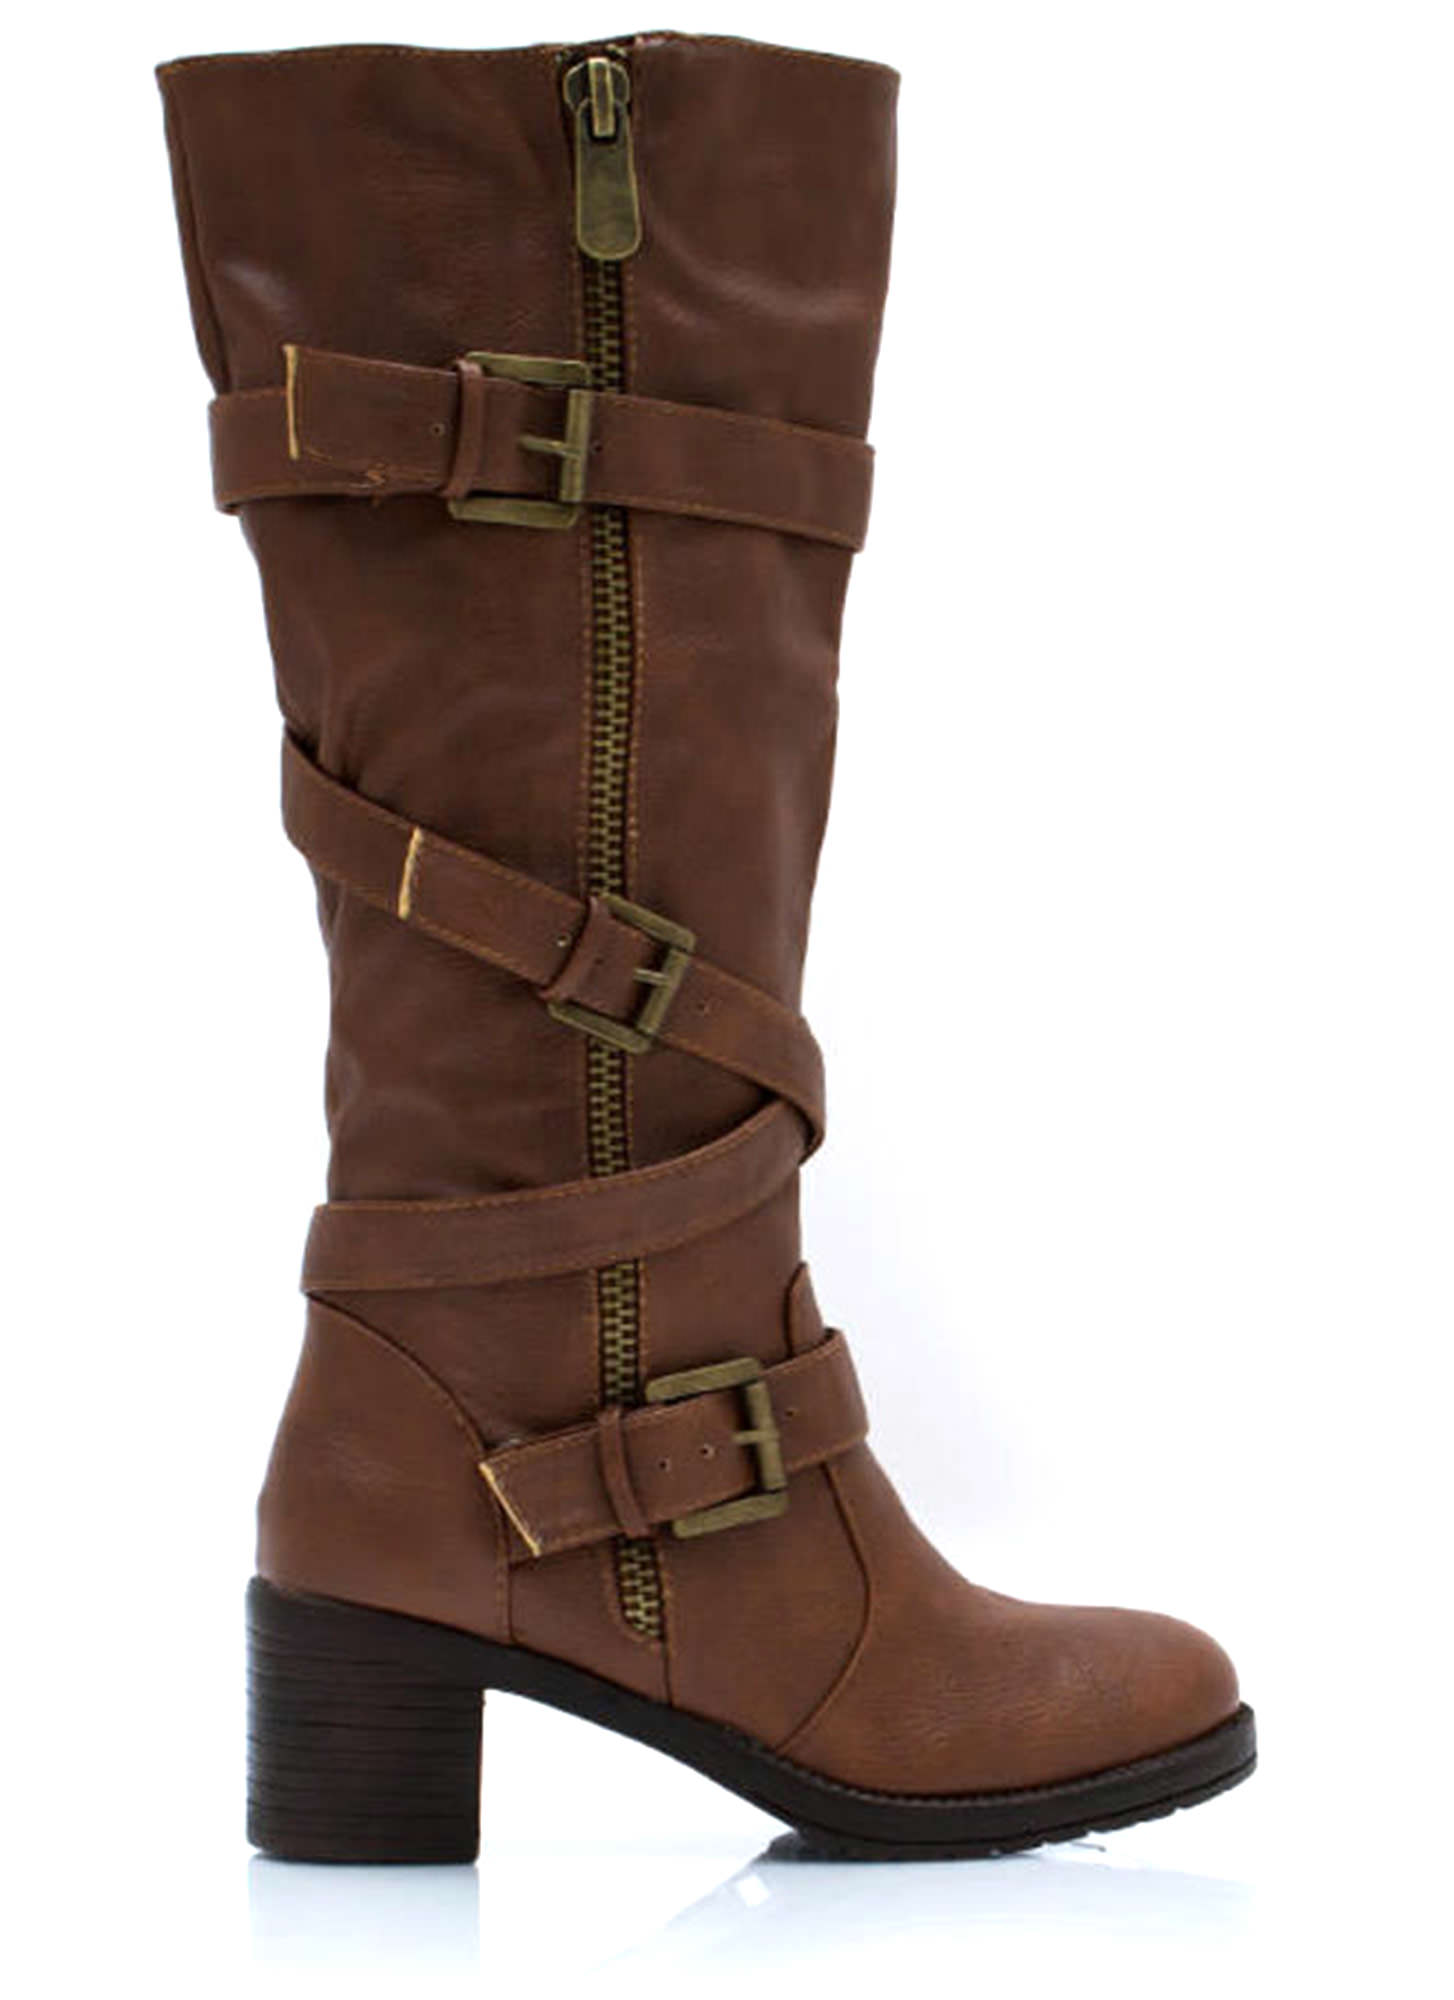 Straparound And Round Buckled Boots CHESTNUT (Final Sale)